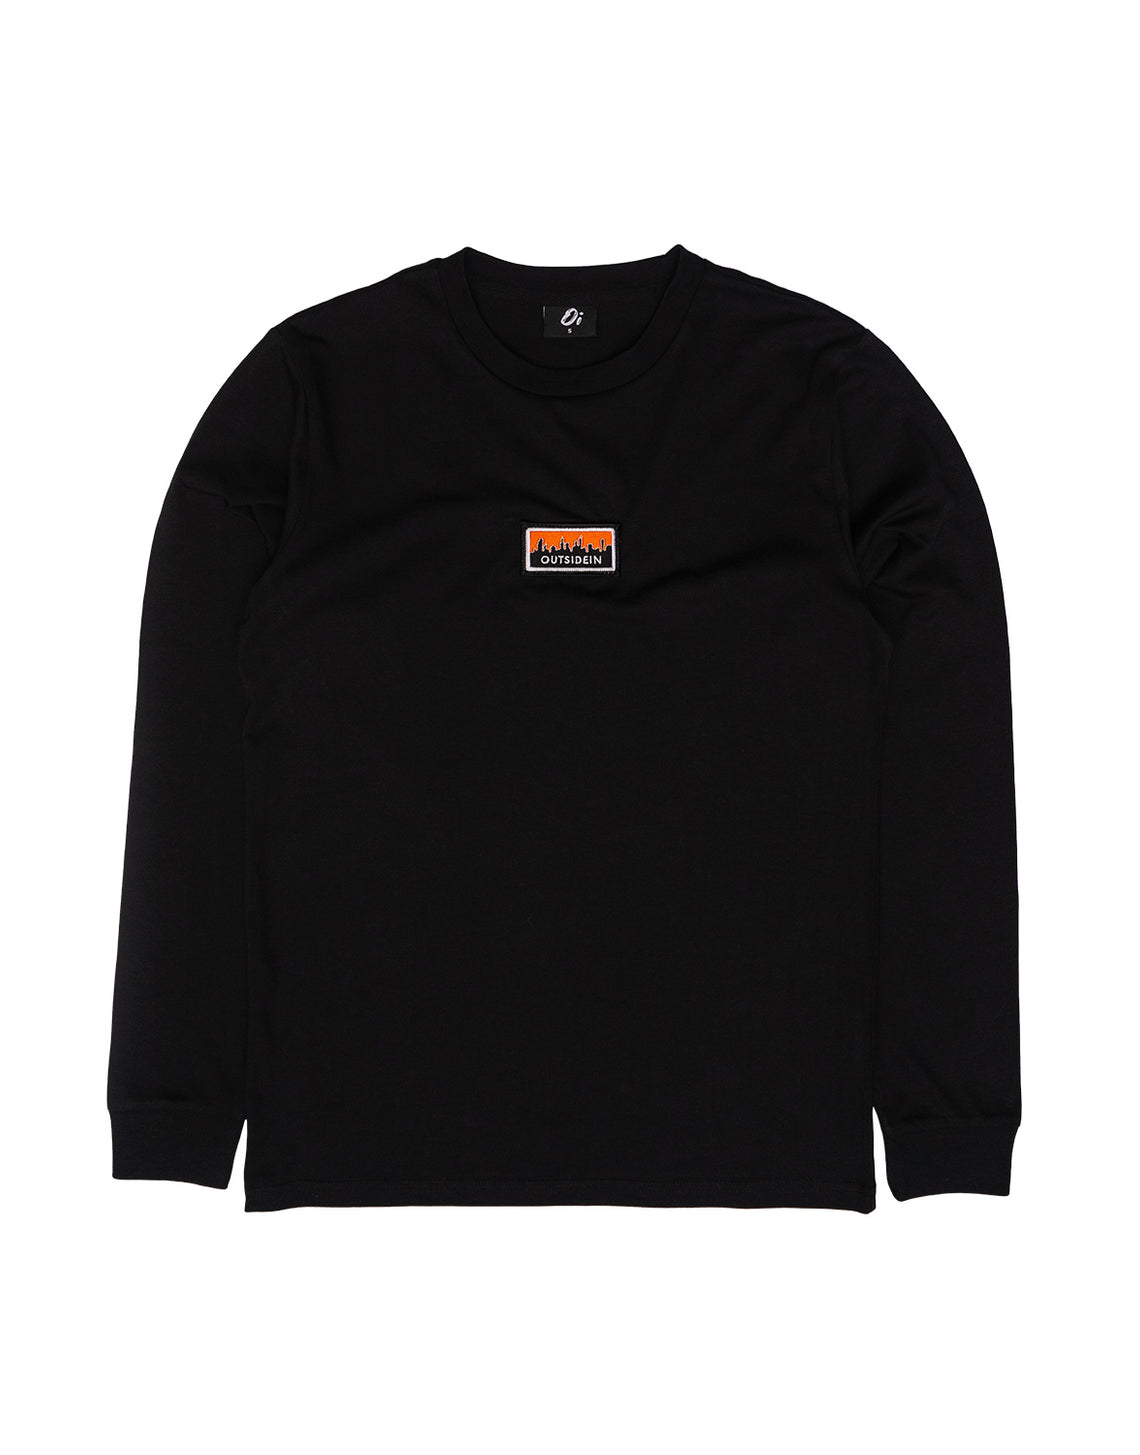 Cityscape Long Sleeve T-Shirt Black - OutsideIn